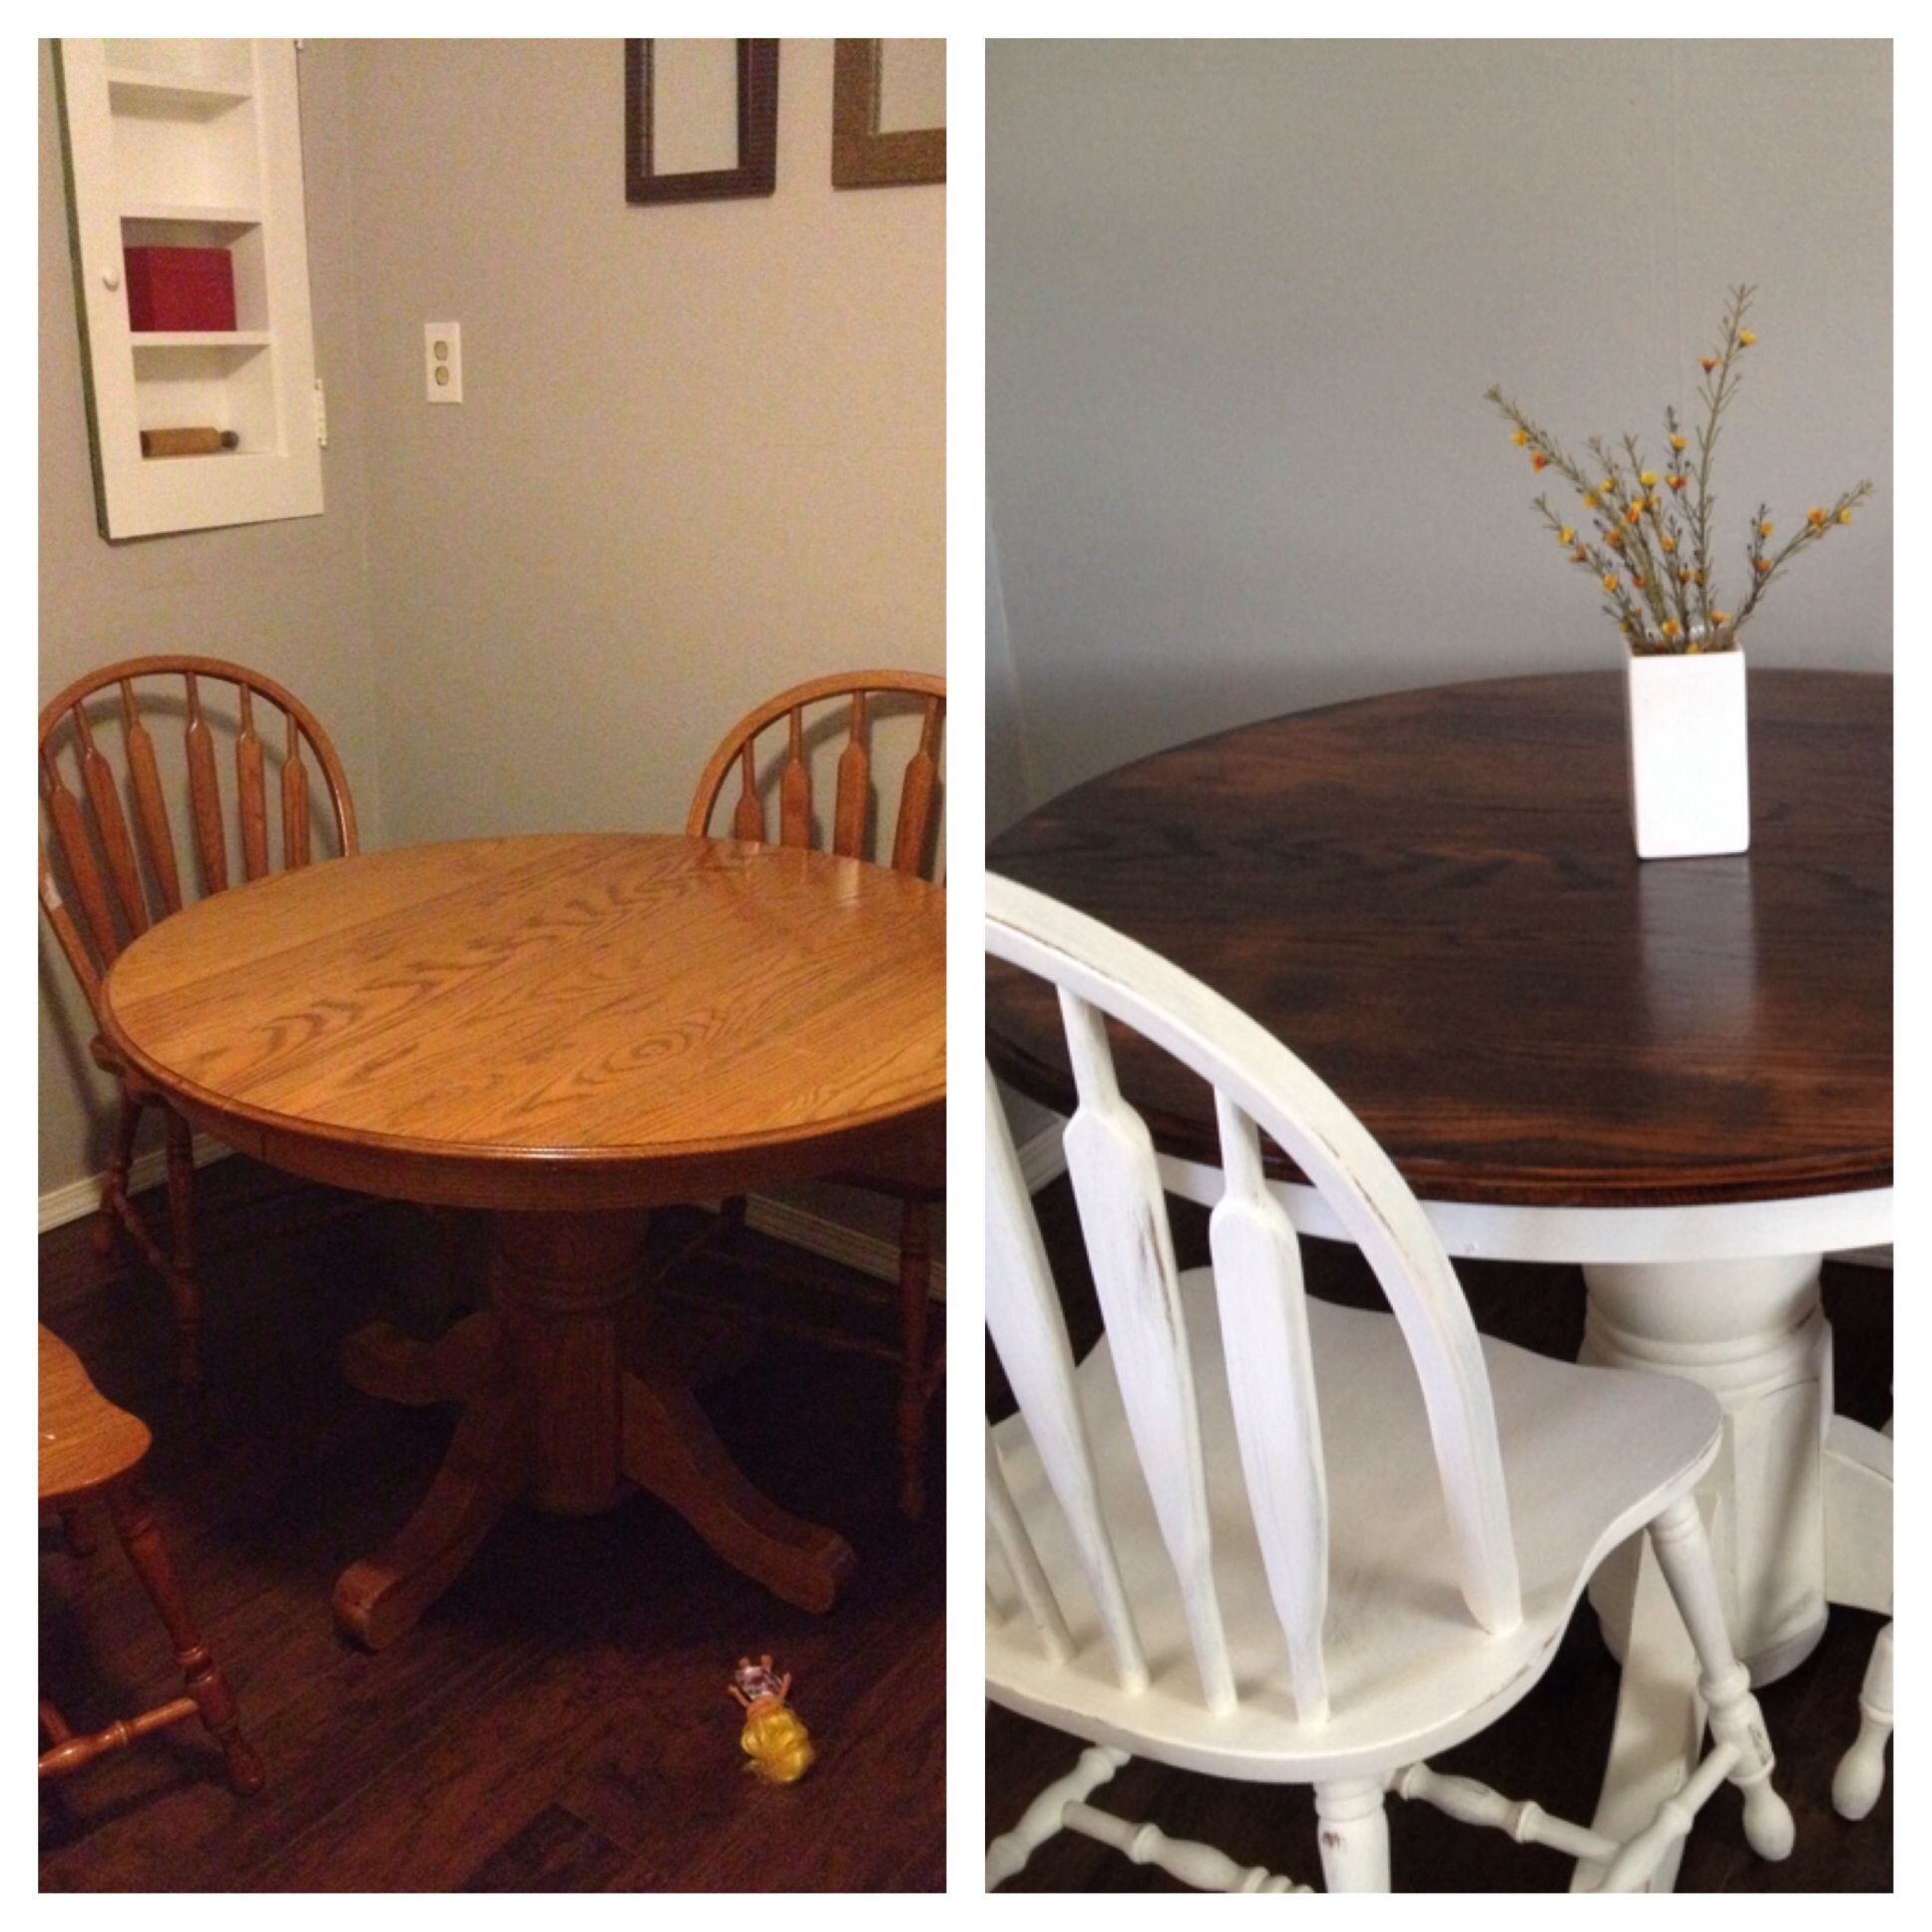 used oak table and chairs chair headrest cover my before after gave an old a makeover chalk paint from home depot sanded stained the top ta da